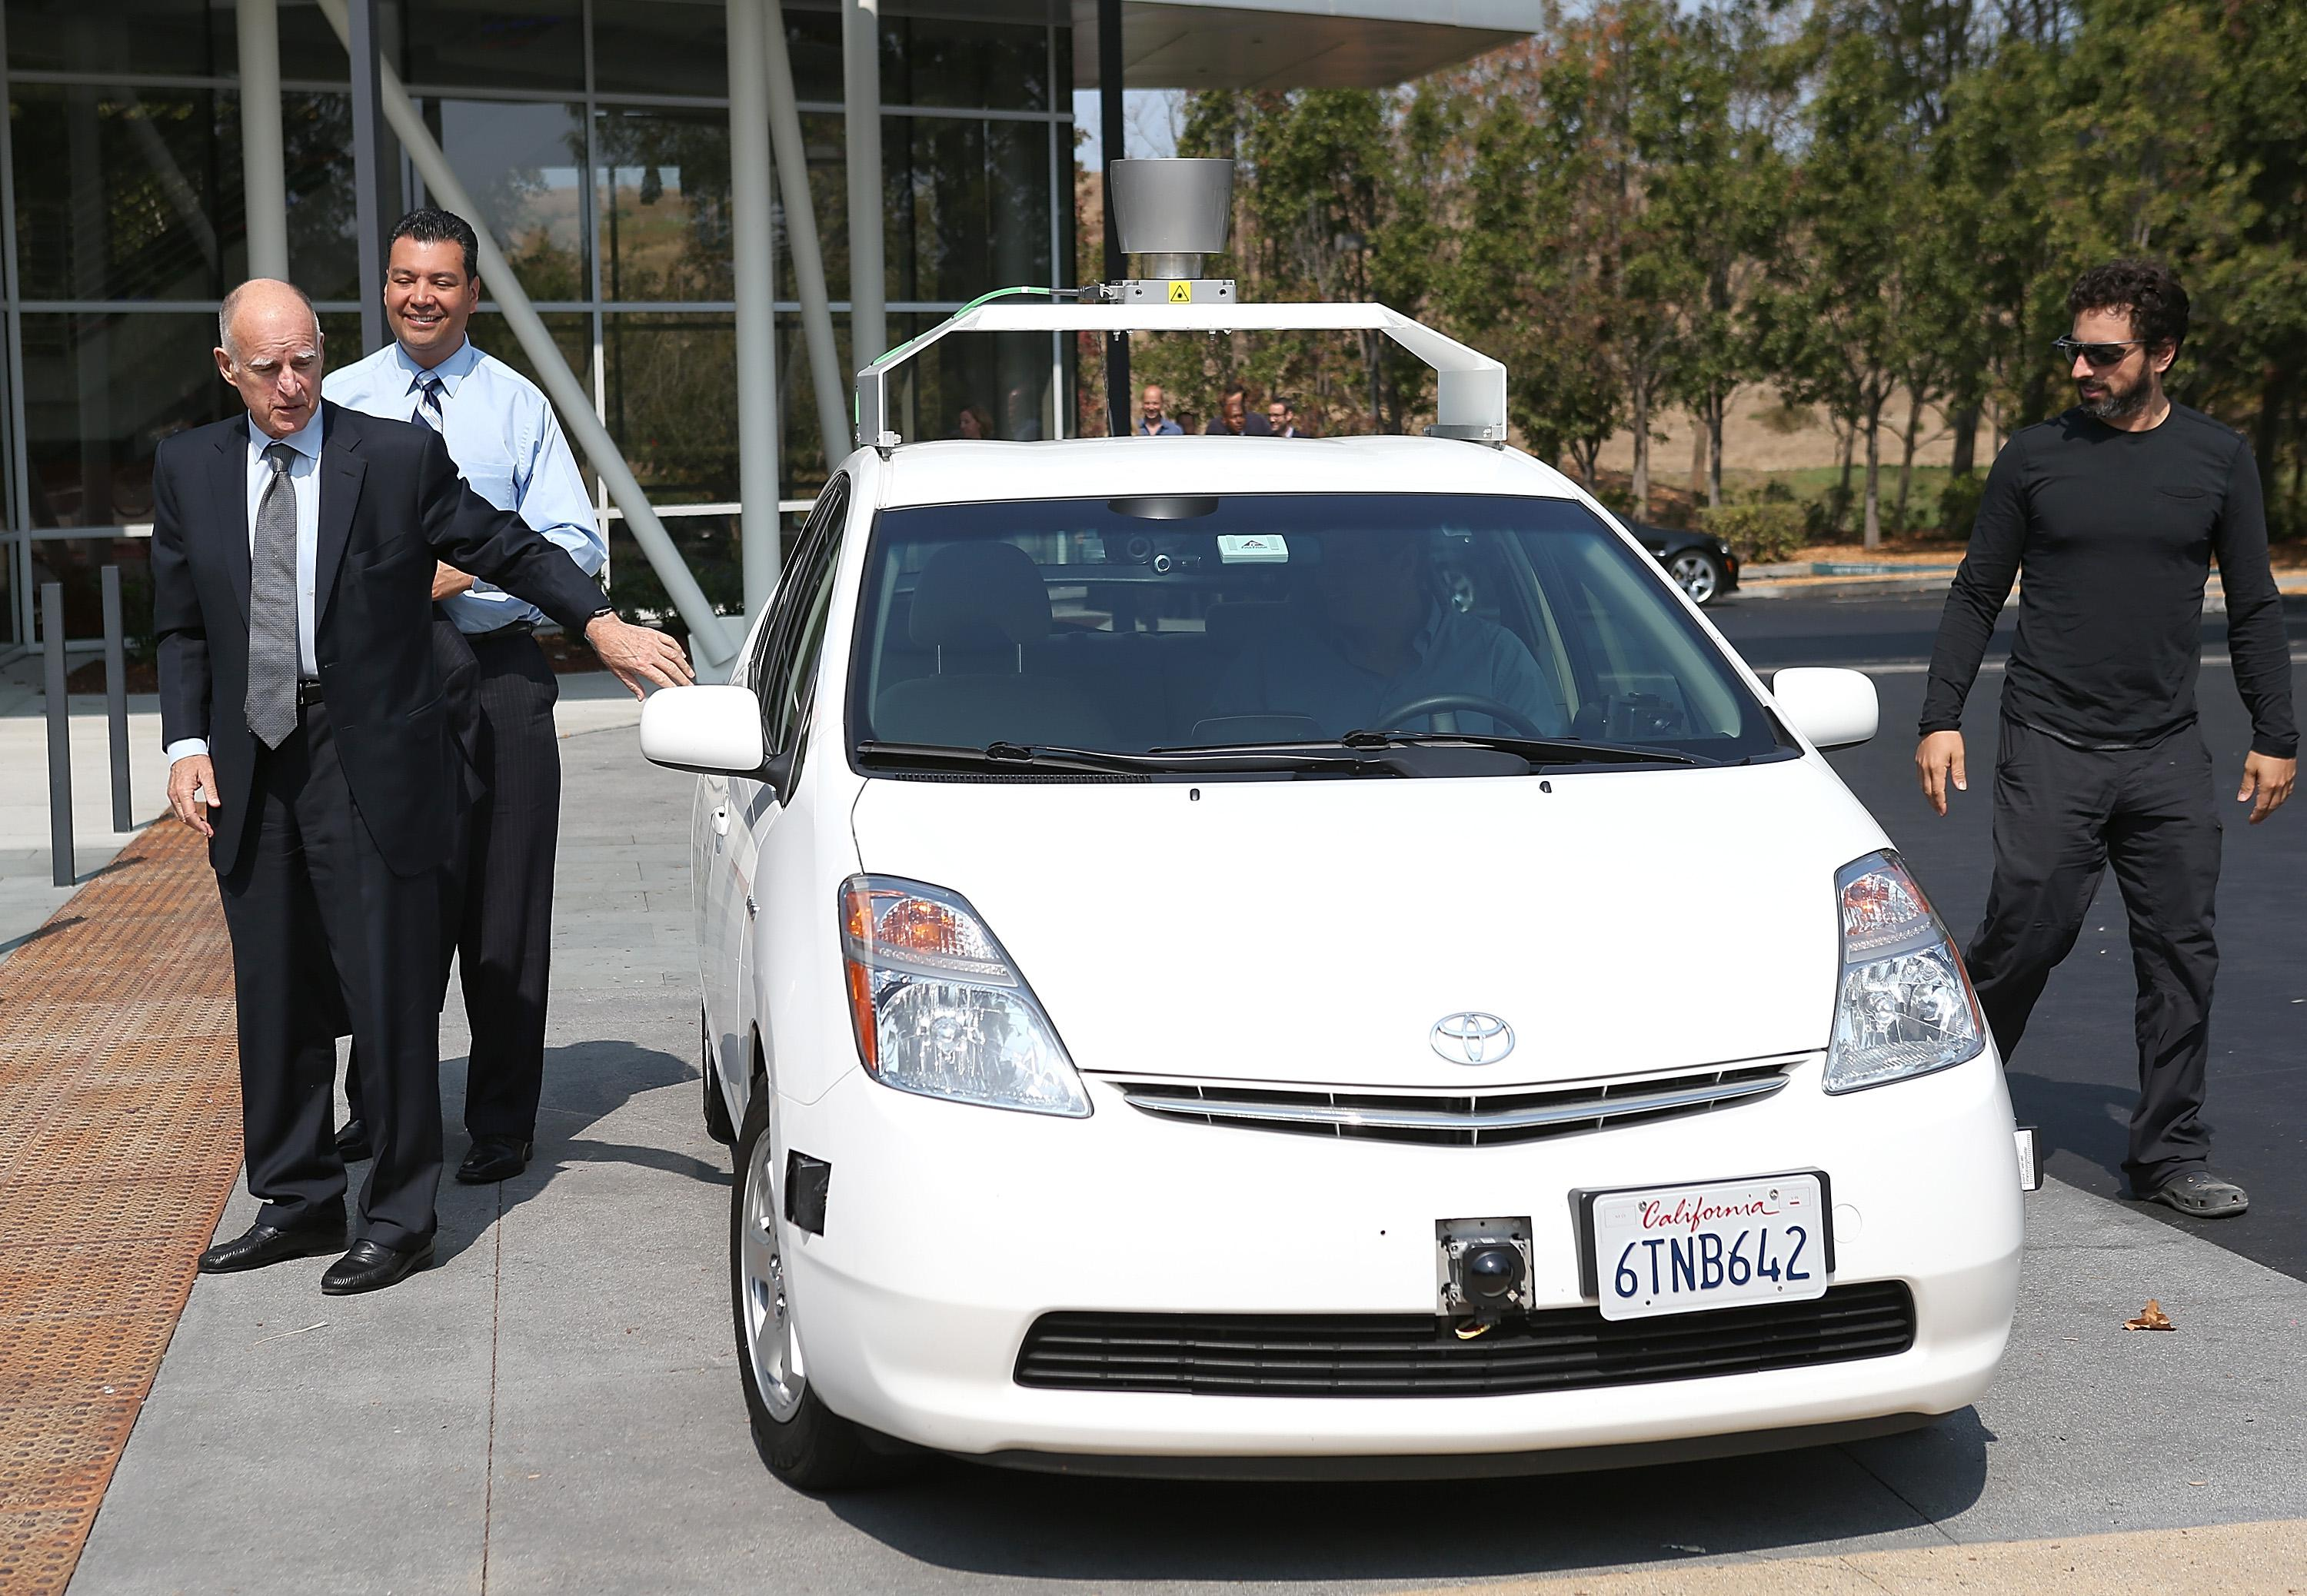 California Gov. Jerry Brown, California State Sen. Alex Padilla, and Google co-founder Sergey Brin exit a self-driving car at the Google headquarters on Sept. 25.